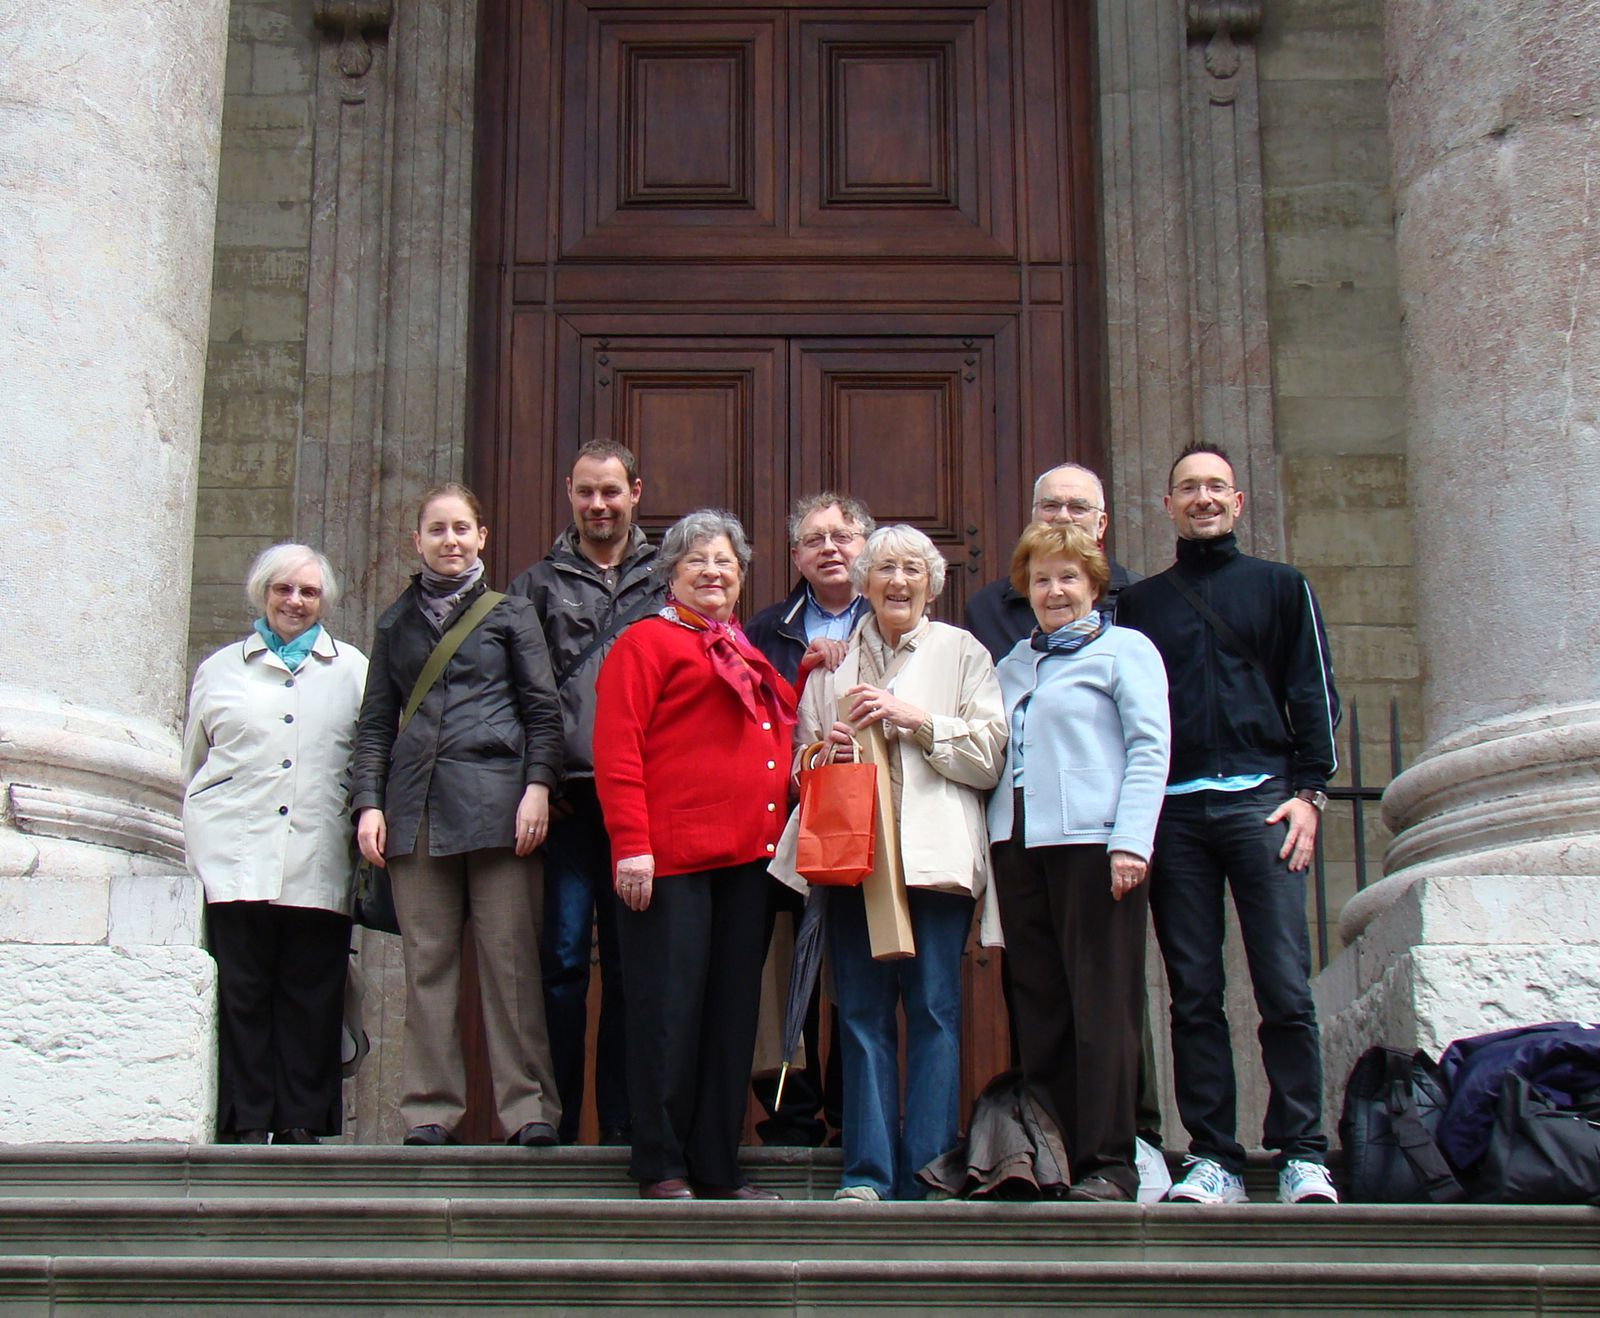 Le groupe devant le temple Saint-Pierre